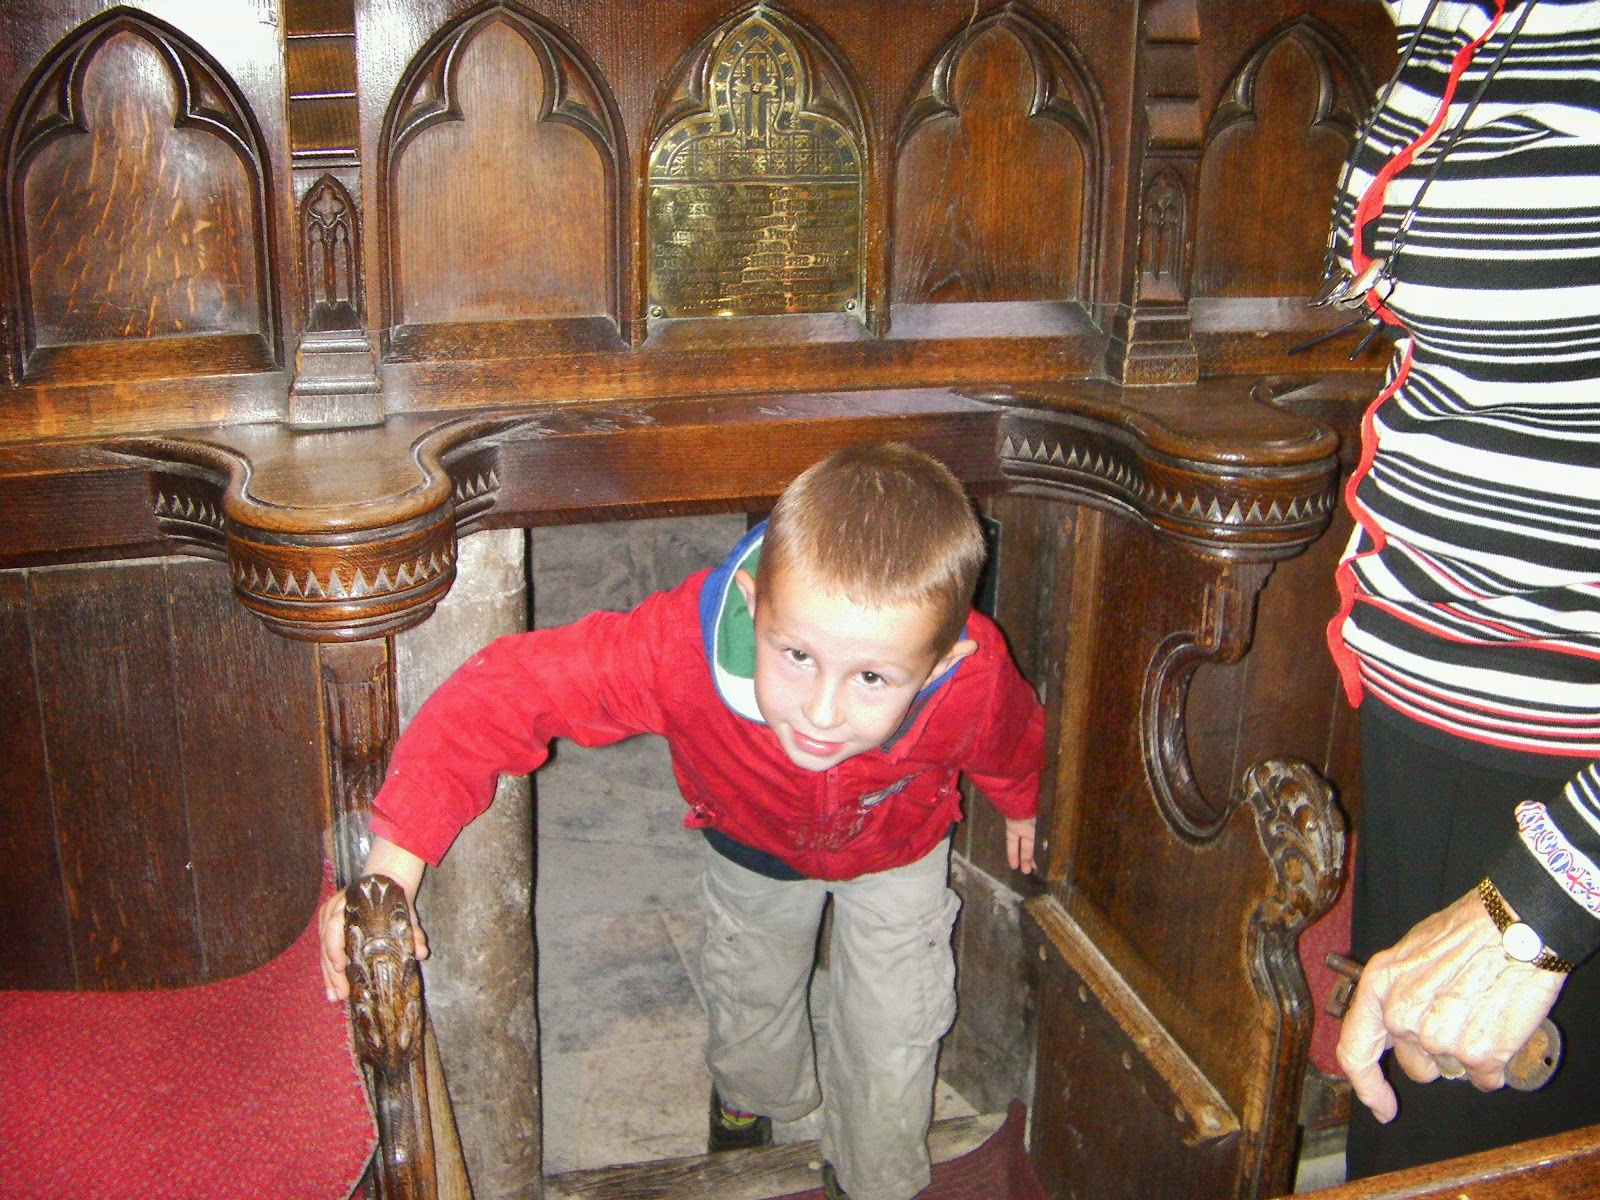 chorister pews with secret door to church tower